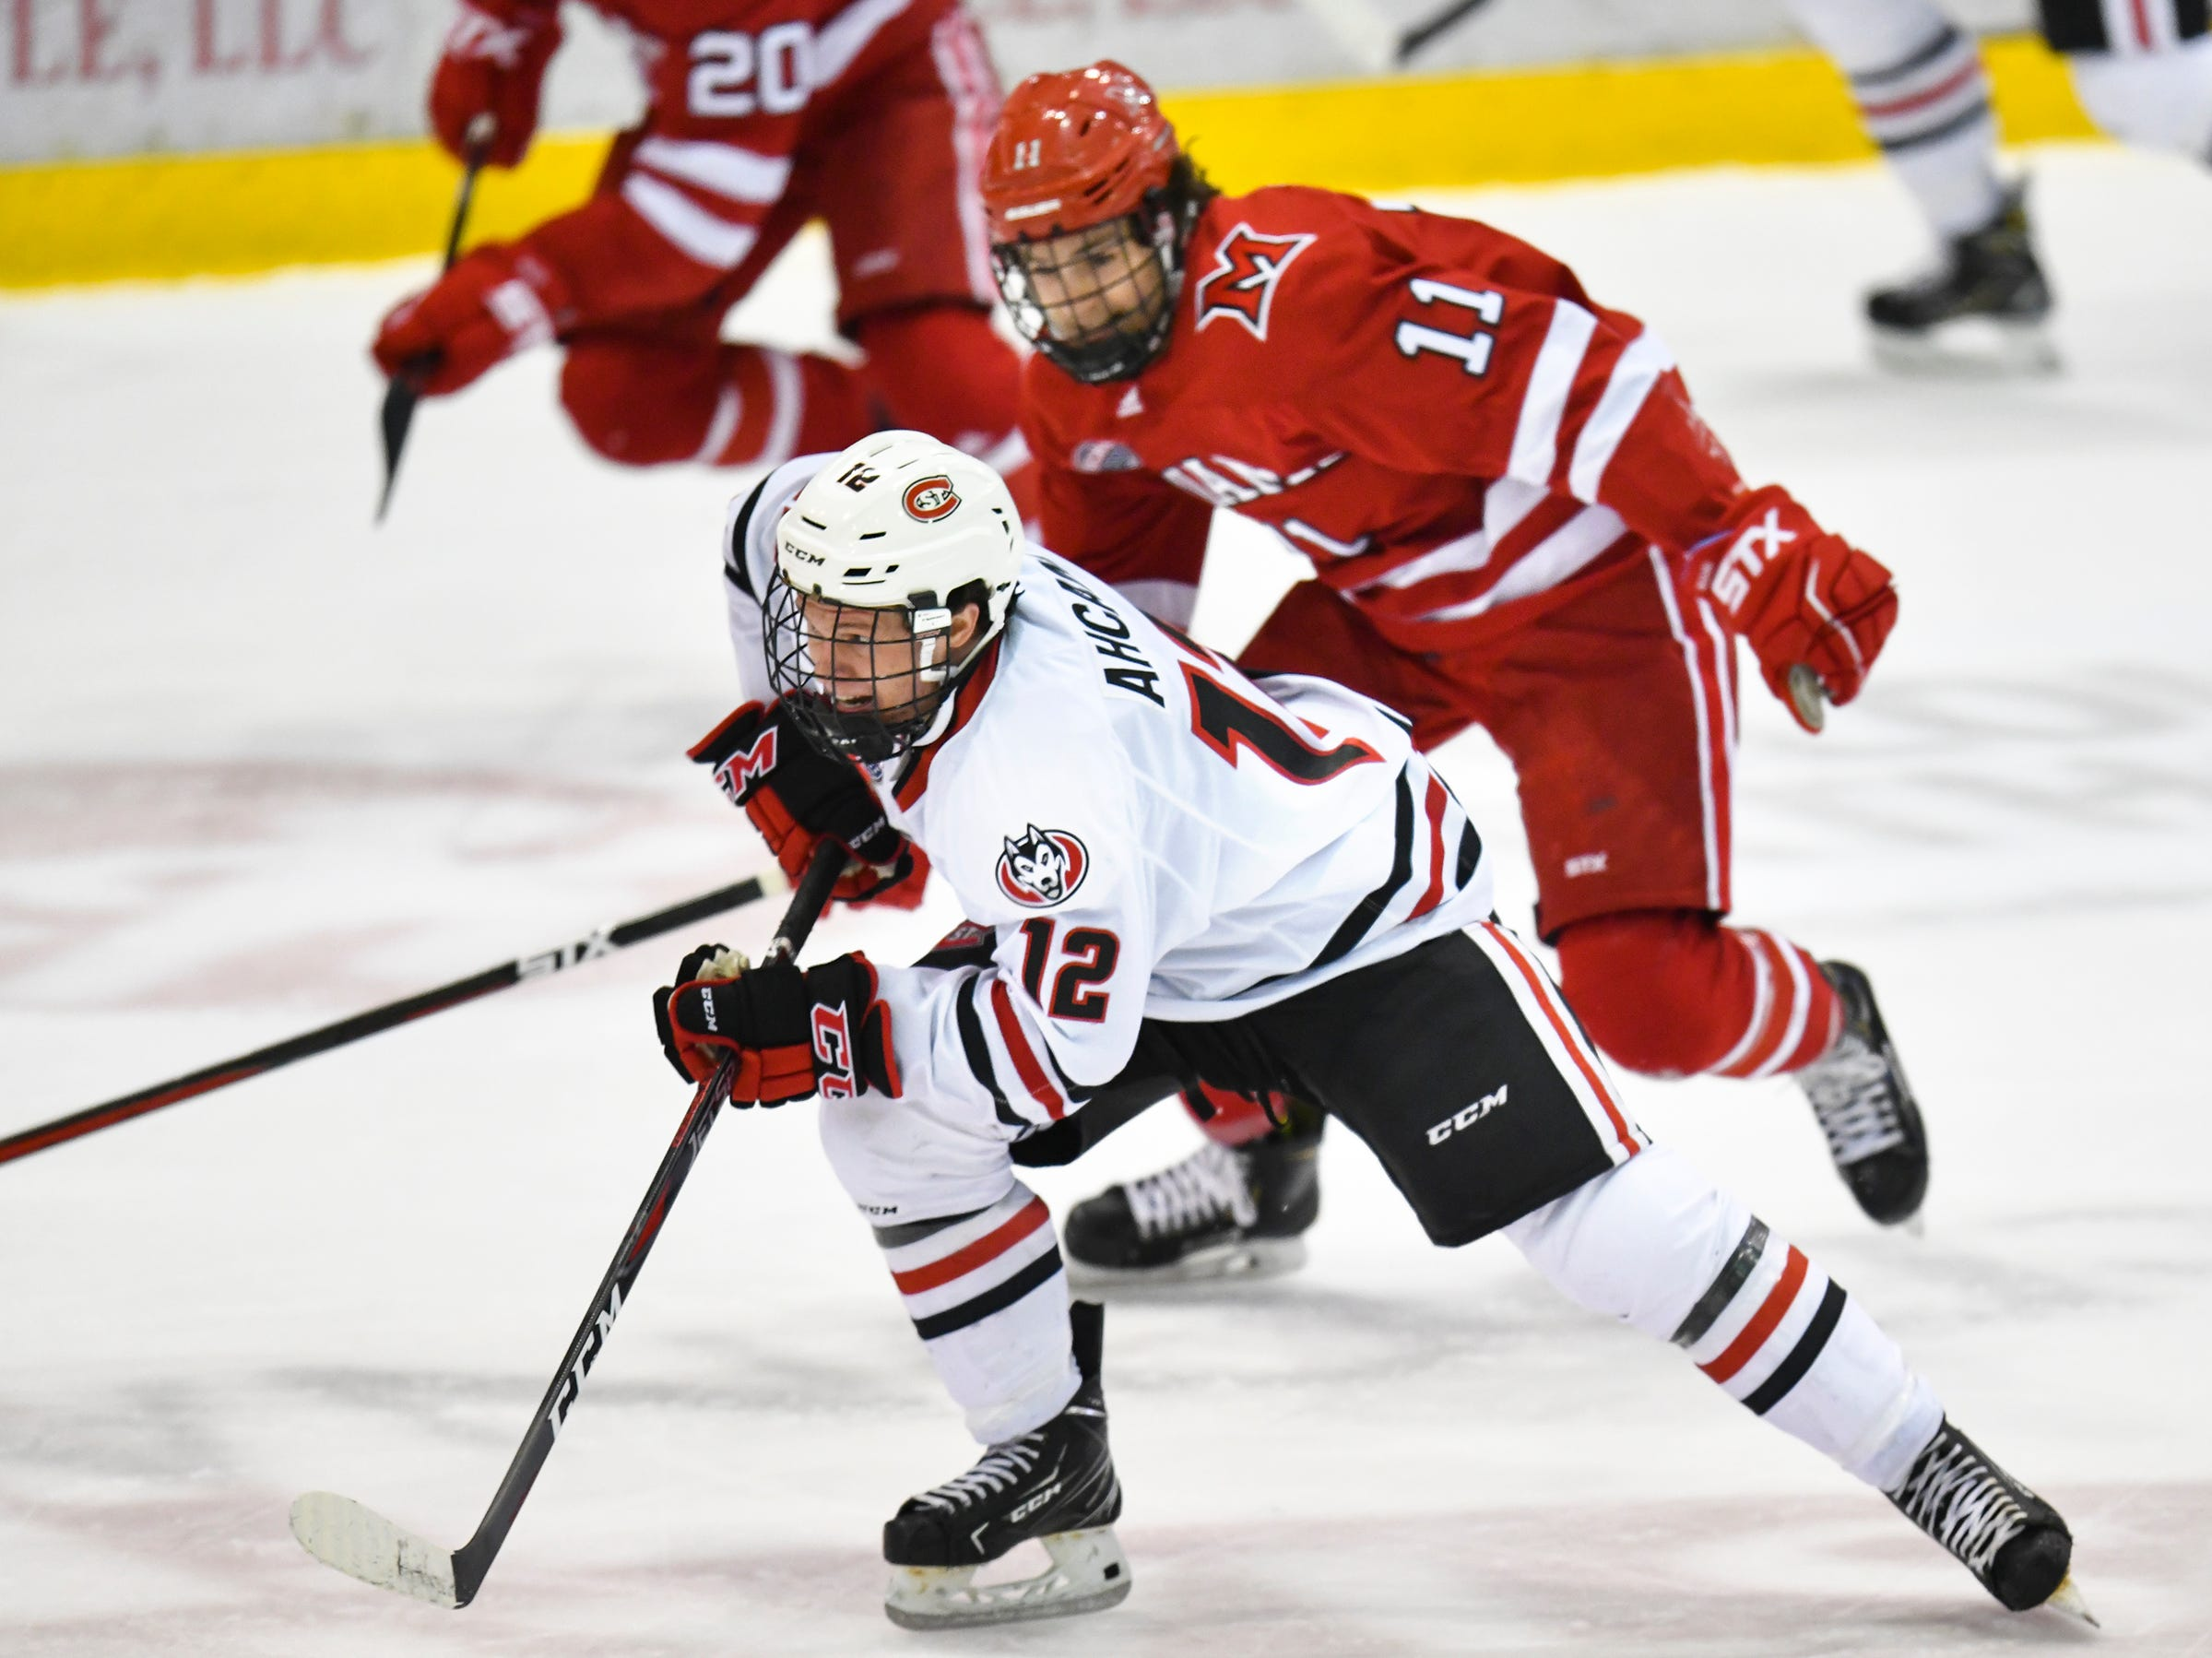 St. Cloud State's Jack Ahcan breaks away with the puck during the first period of the Saturday, March 16 game at the Herb Brooks National Hockey Center in St. Cloud.